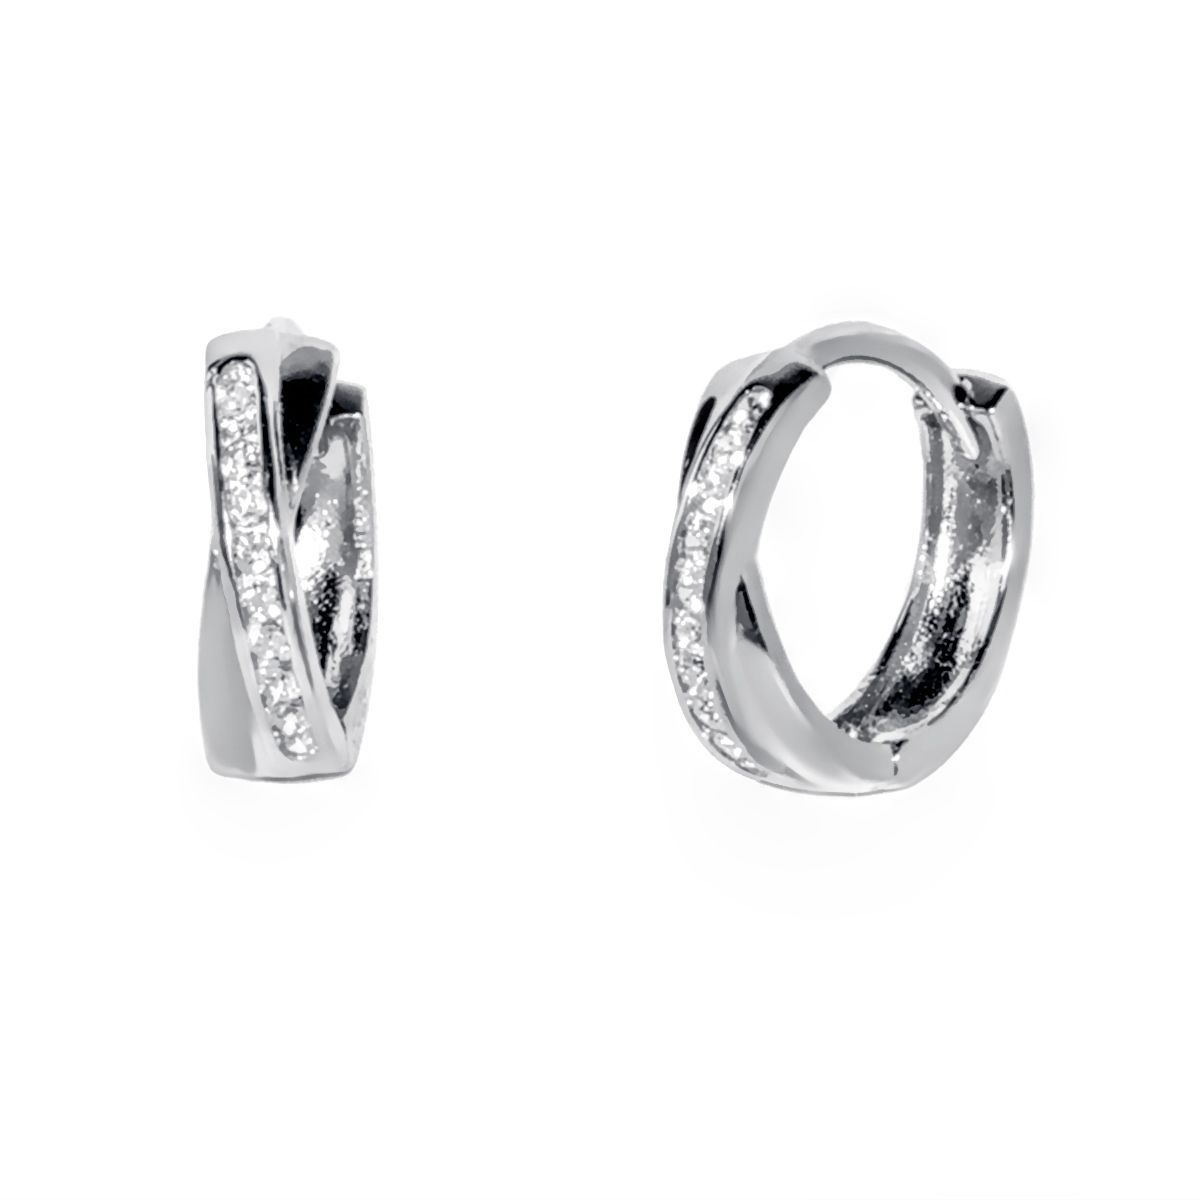 2ee940da1692f8 Pori 18K Gold plated or Rhodium Plated Sterling Silver Two-tone CZ Criss  Cross Huggie Earrings (